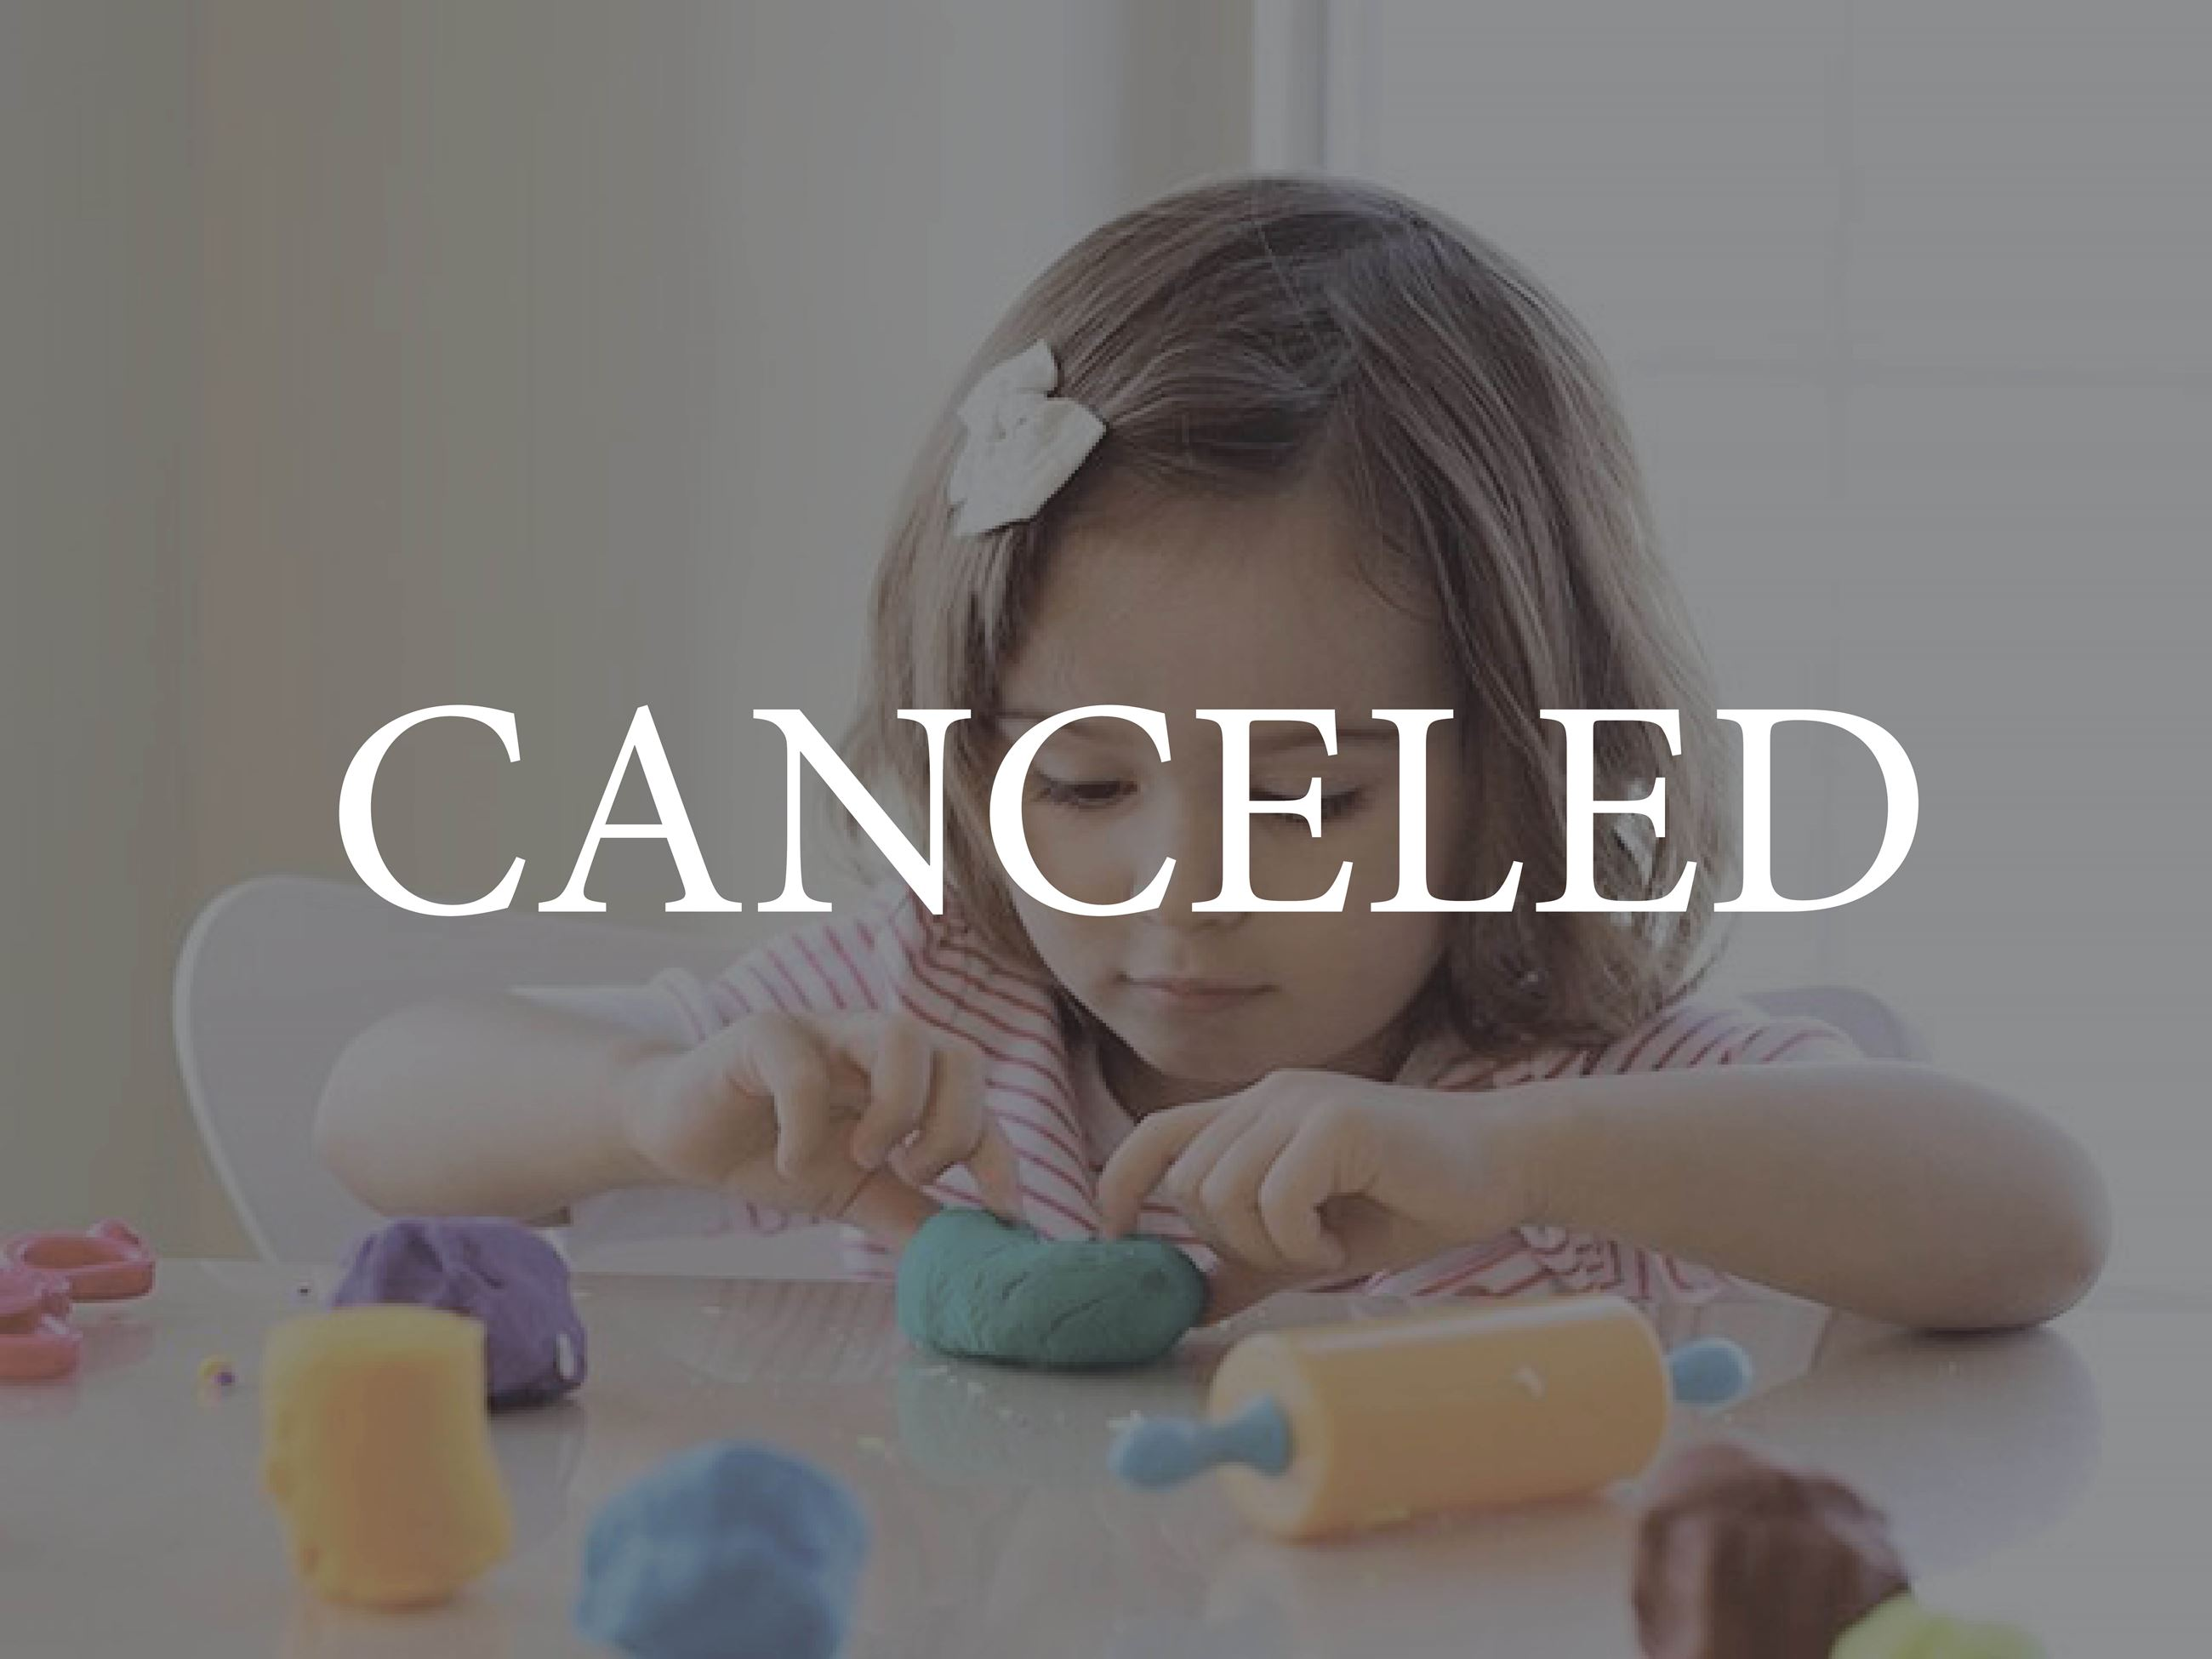 Play-Doh Adventure canceld